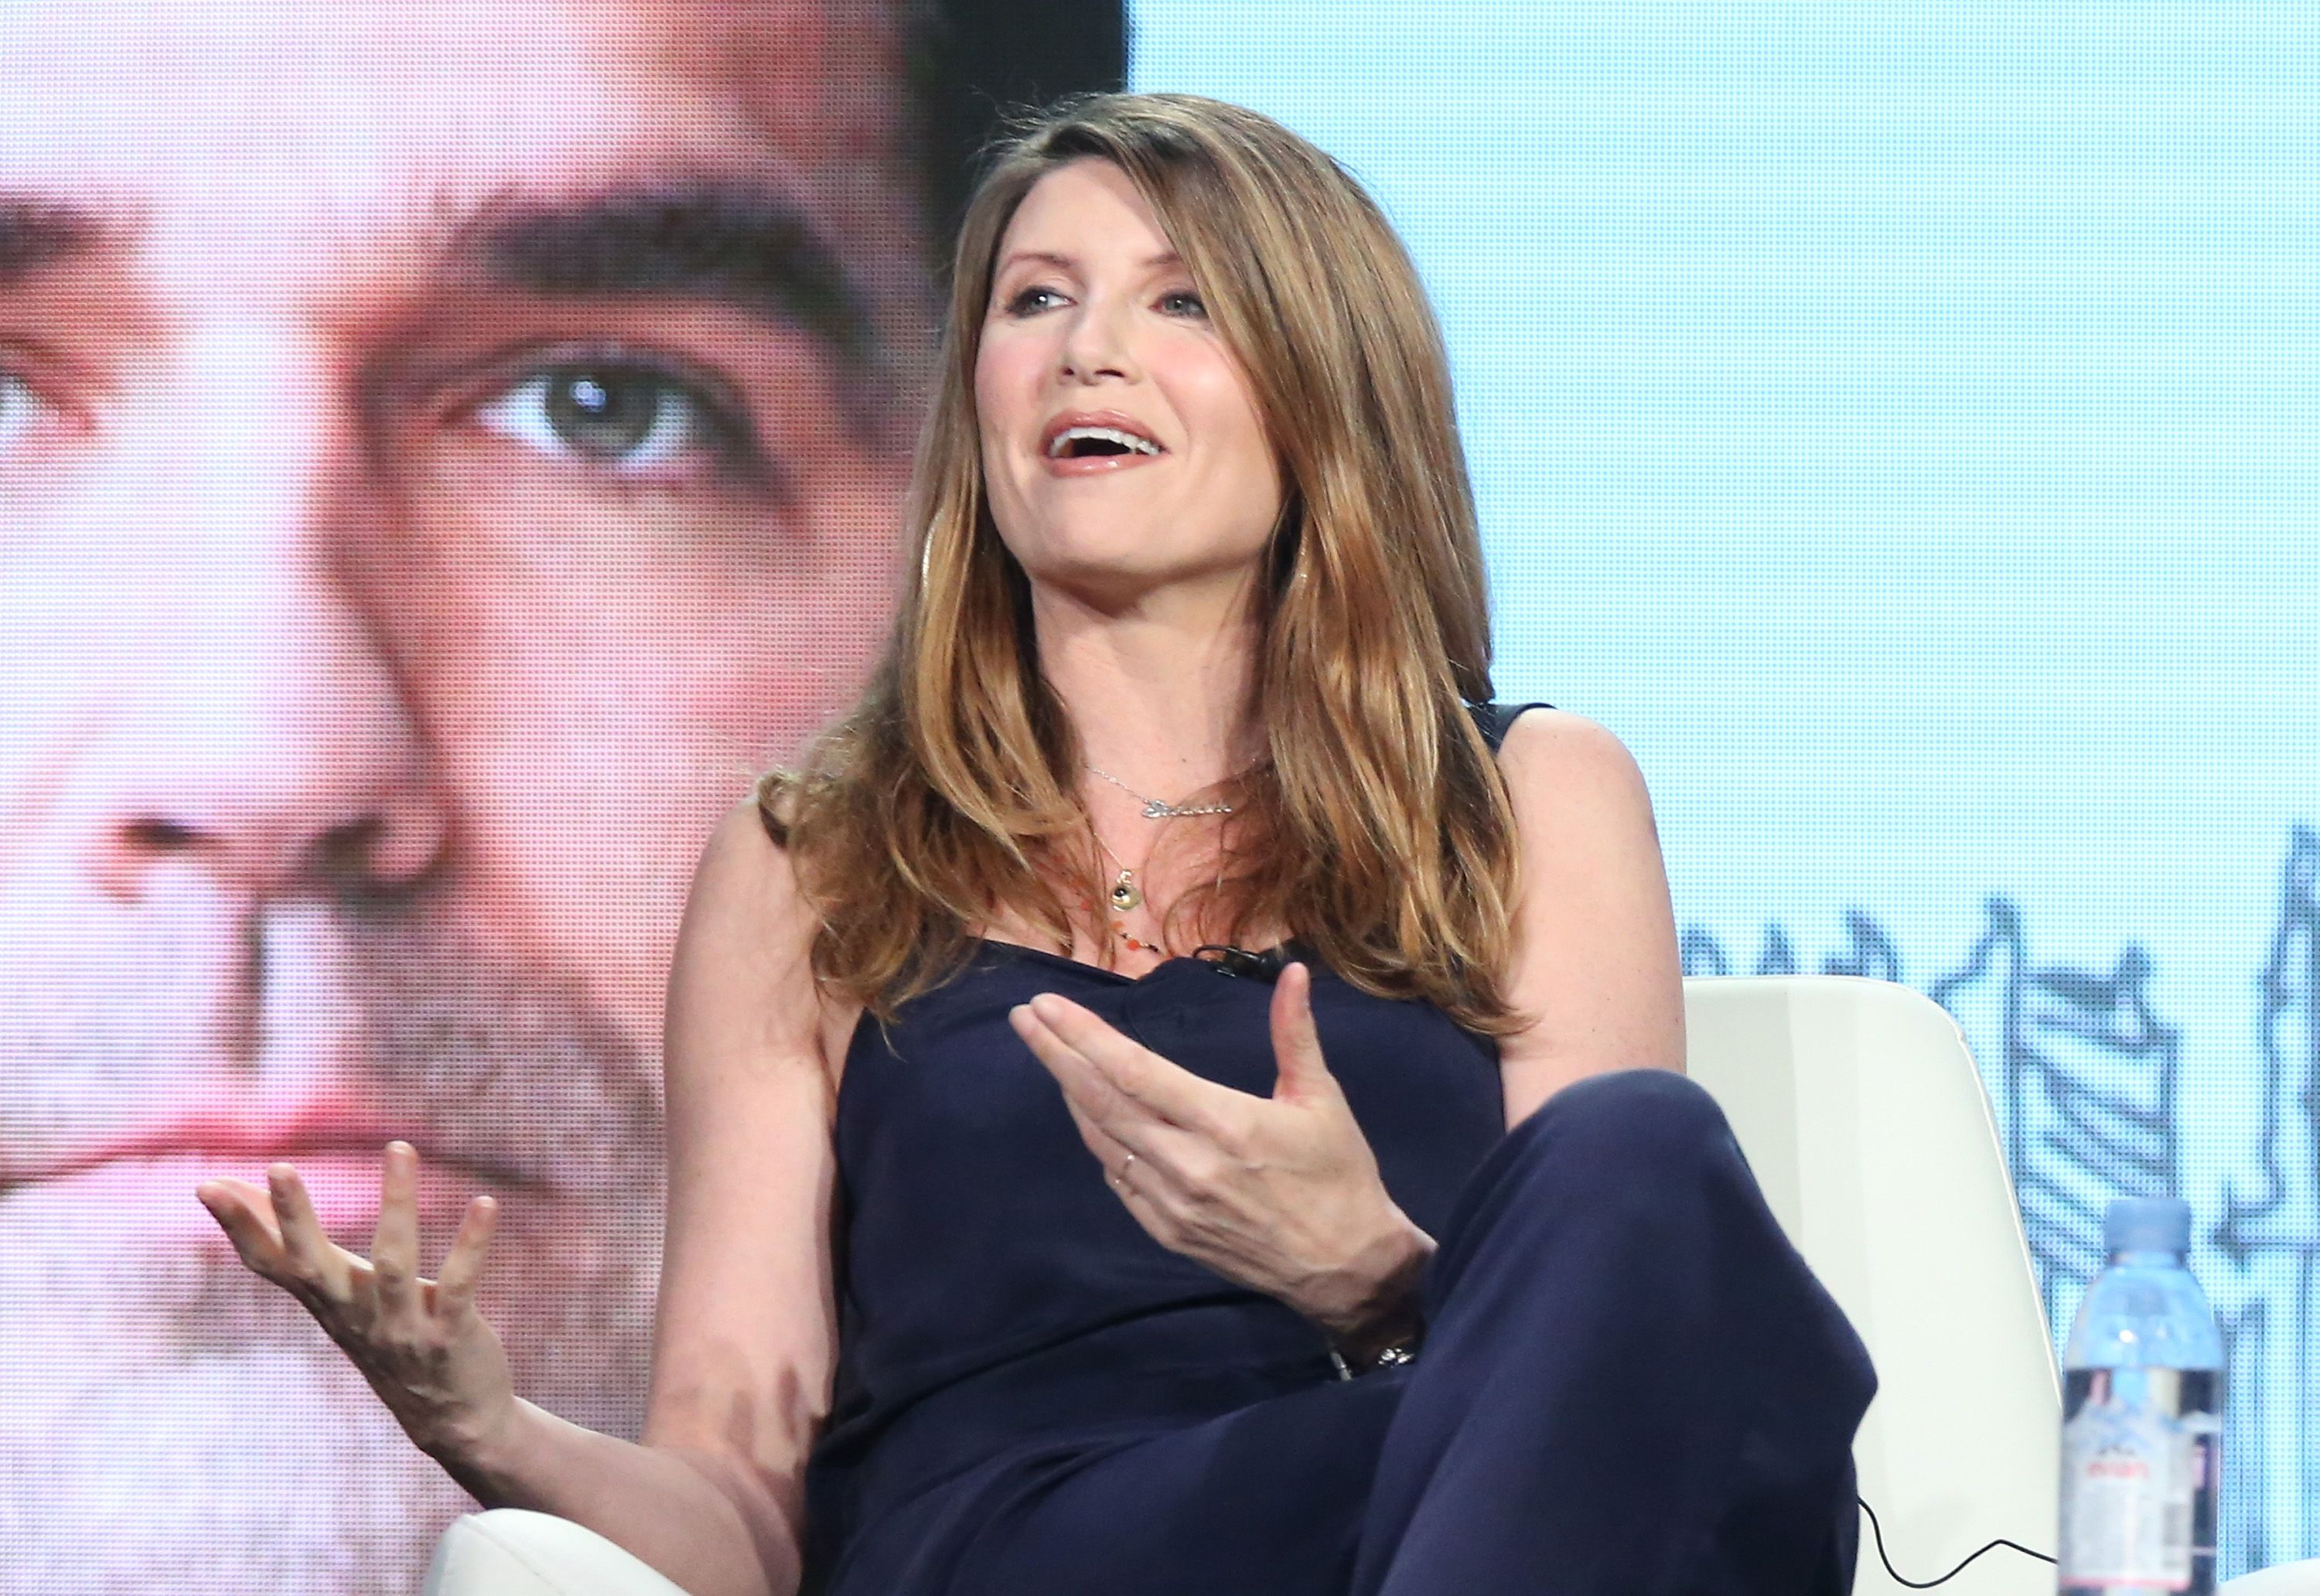 """Catastrophe's Sharon Horgan defends doing what she """"was trying to avoid"""" in new show Modern Love"""